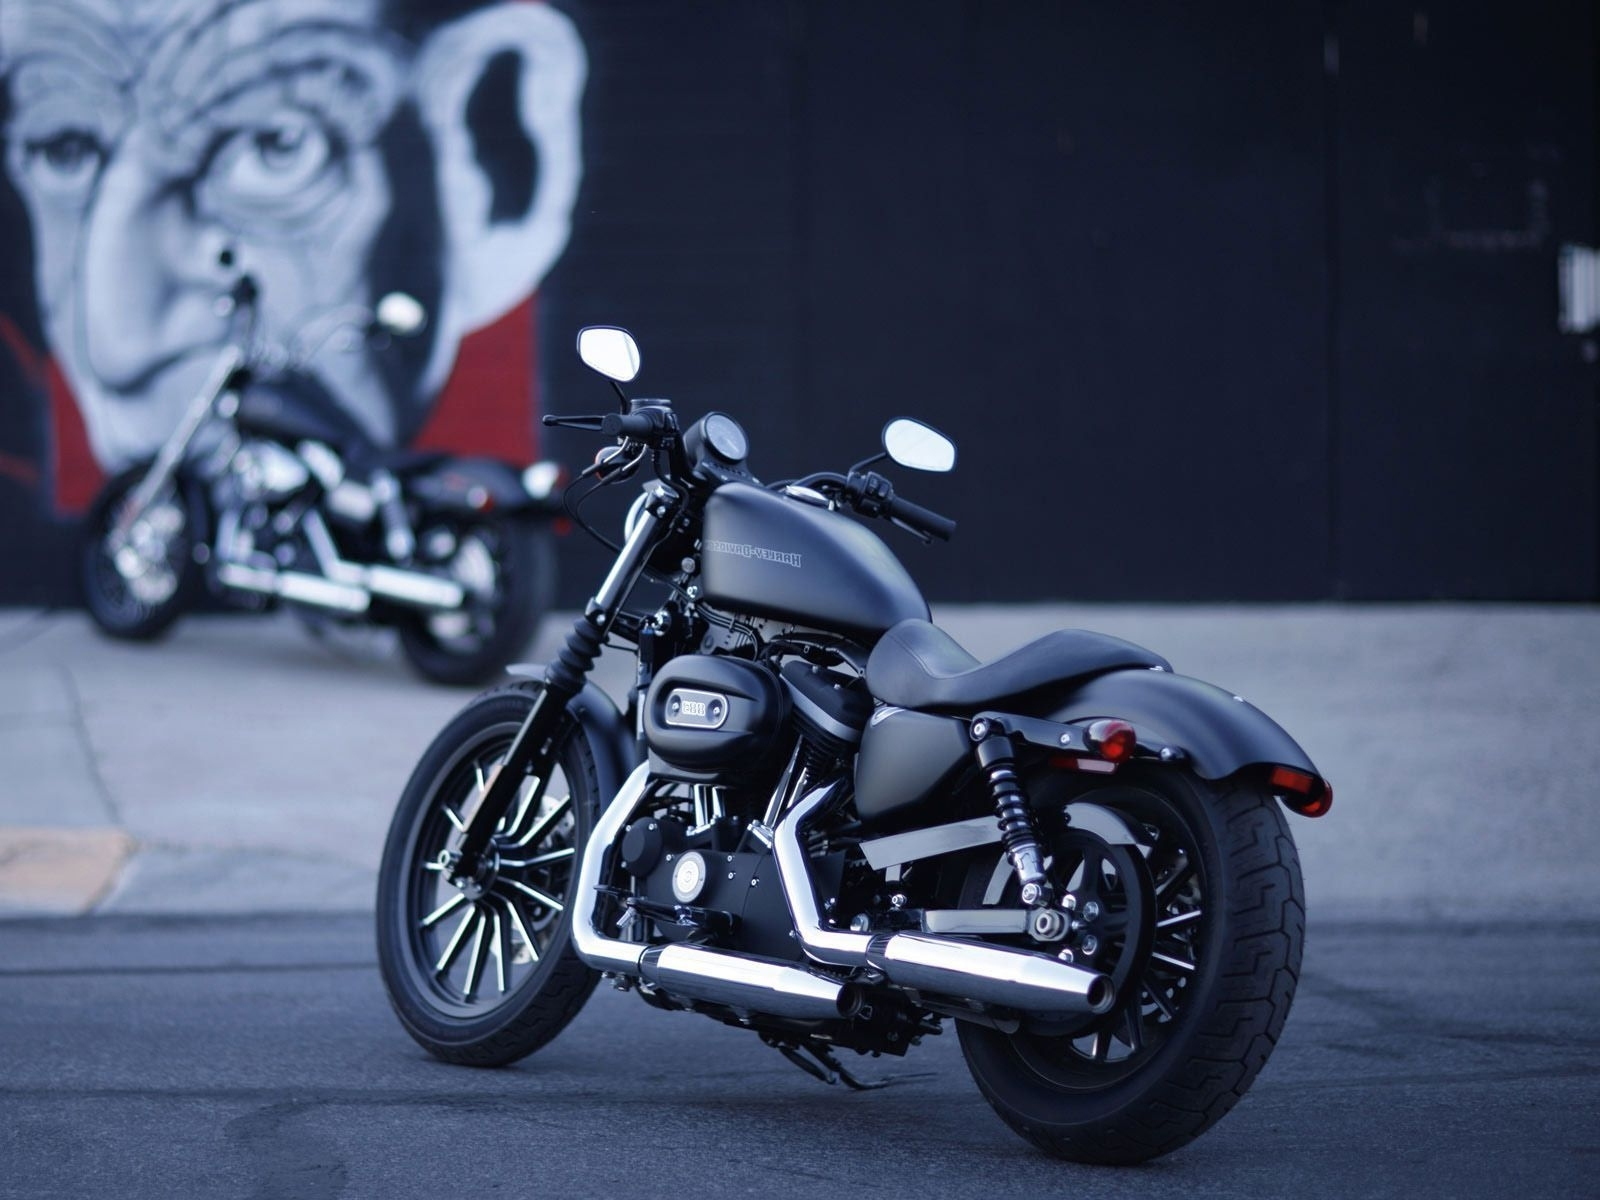 Free Download Harley Davidson Wallpapers Hd Wallpapers 1600x1200